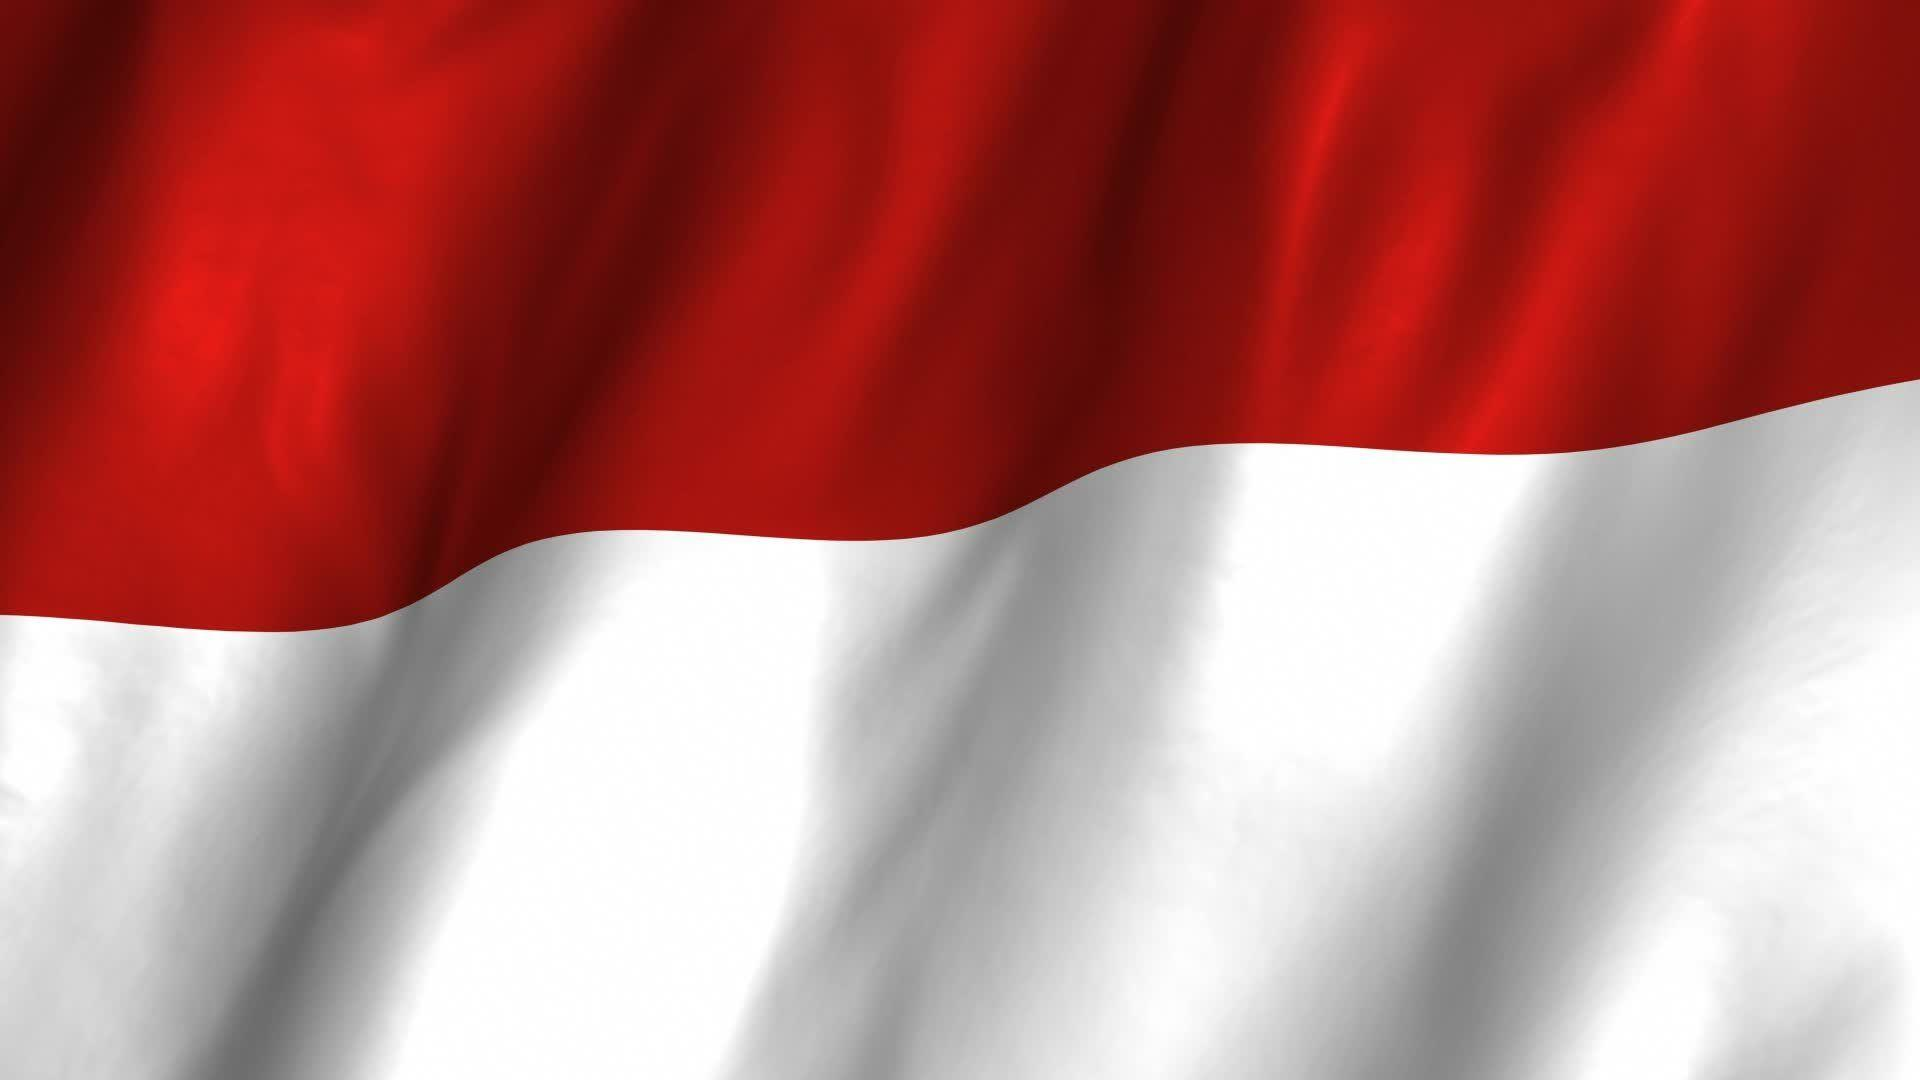 indonesia flag wallpapers wallpaper cave indonesia flag wallpapers wallpaper cave